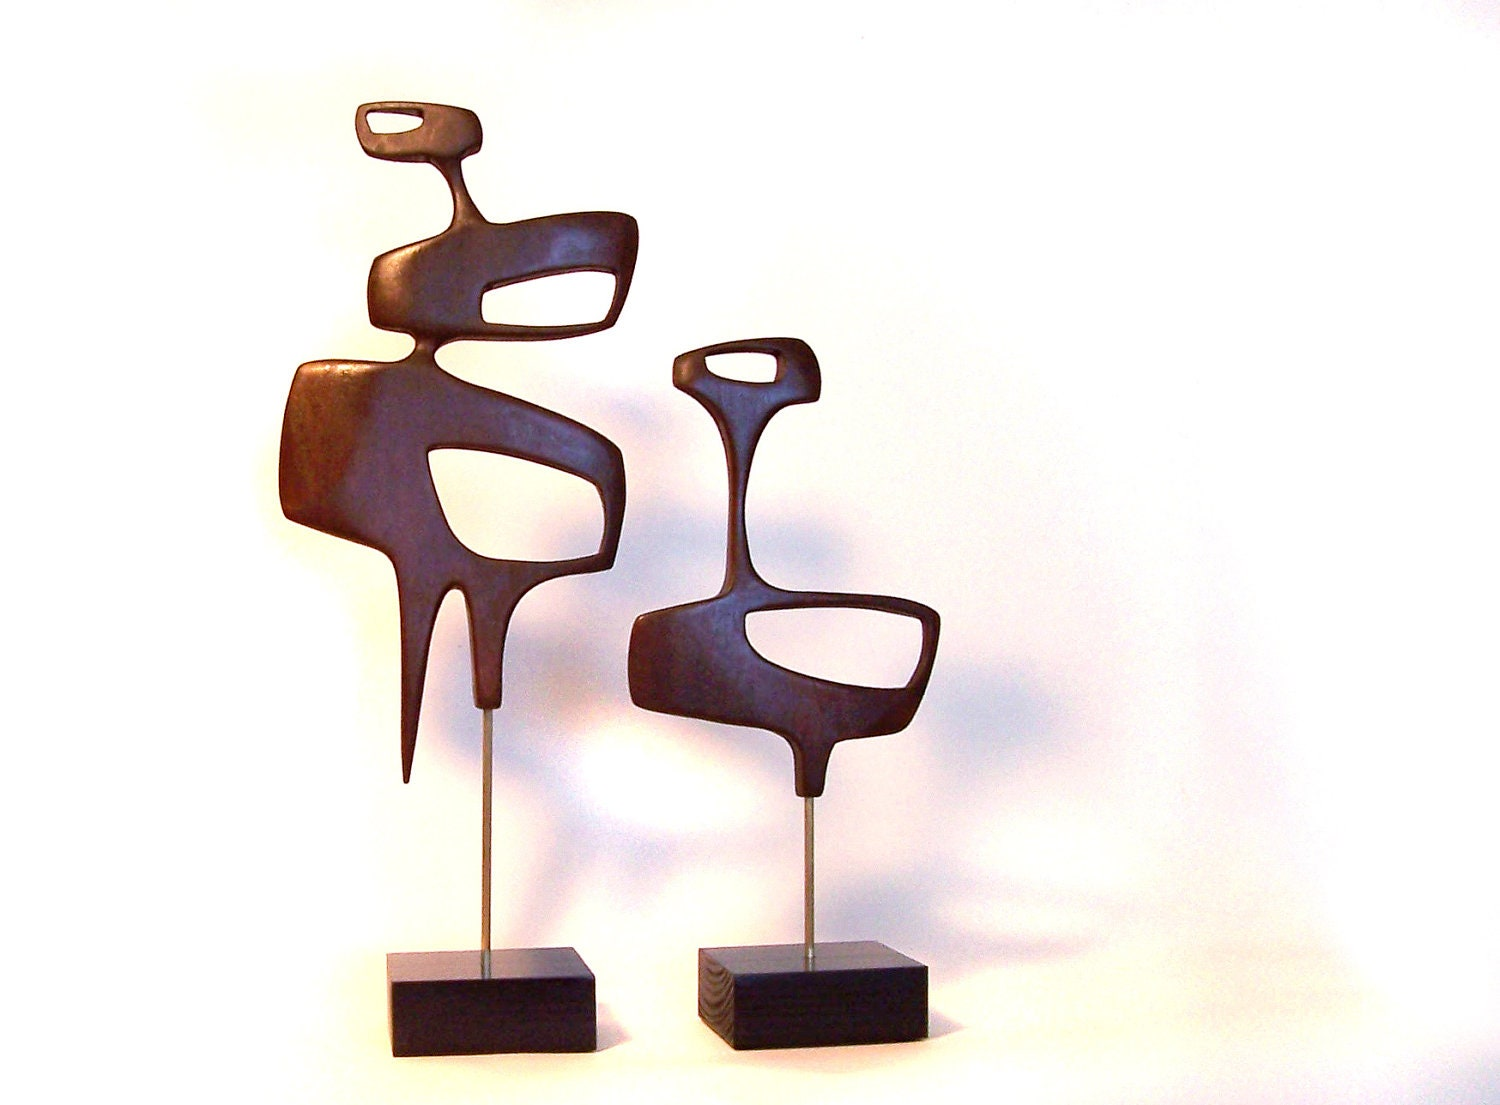 Mid century modern art sculpture eames era by for Mid modern period